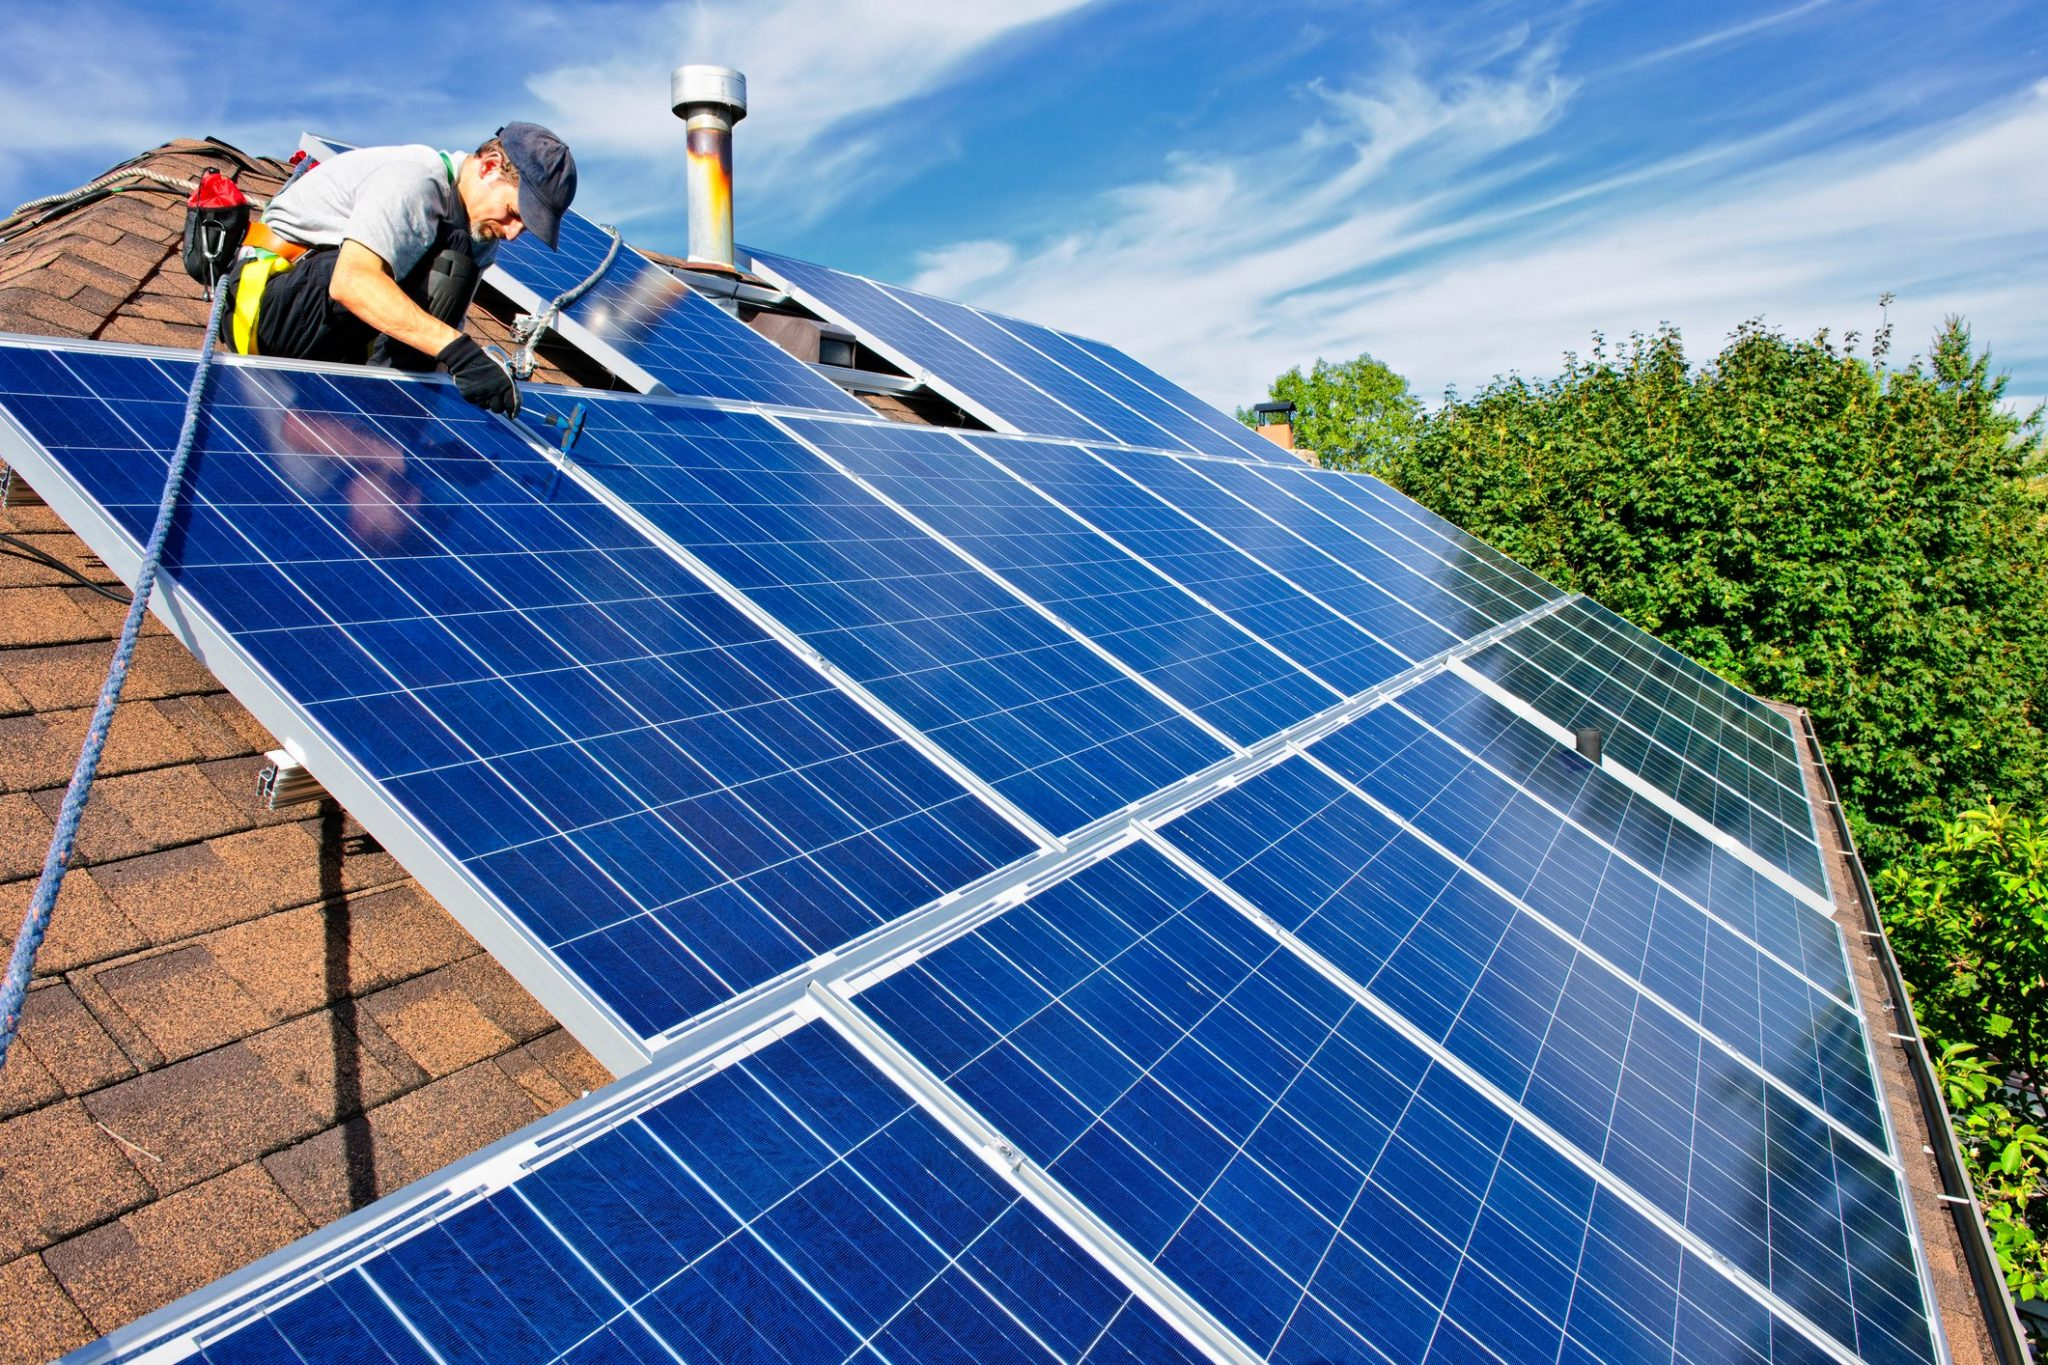 Advantages of Rooftop Solar Systems